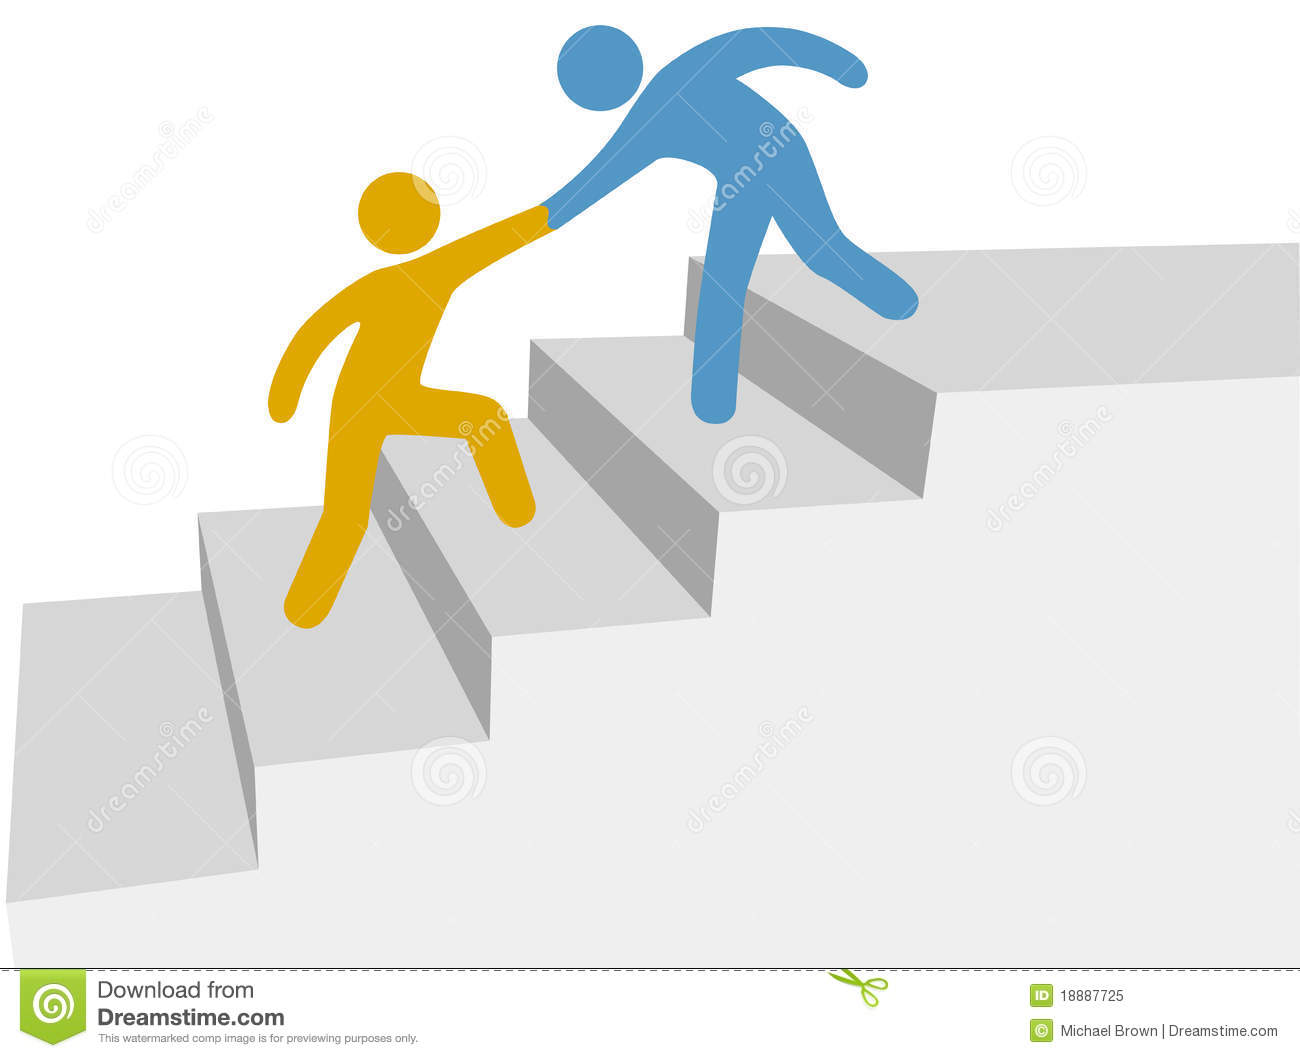 http://thumbs.dreamstime.com/z/progress-collaboration-help-climb-up-improve-steps-18887725.jpg